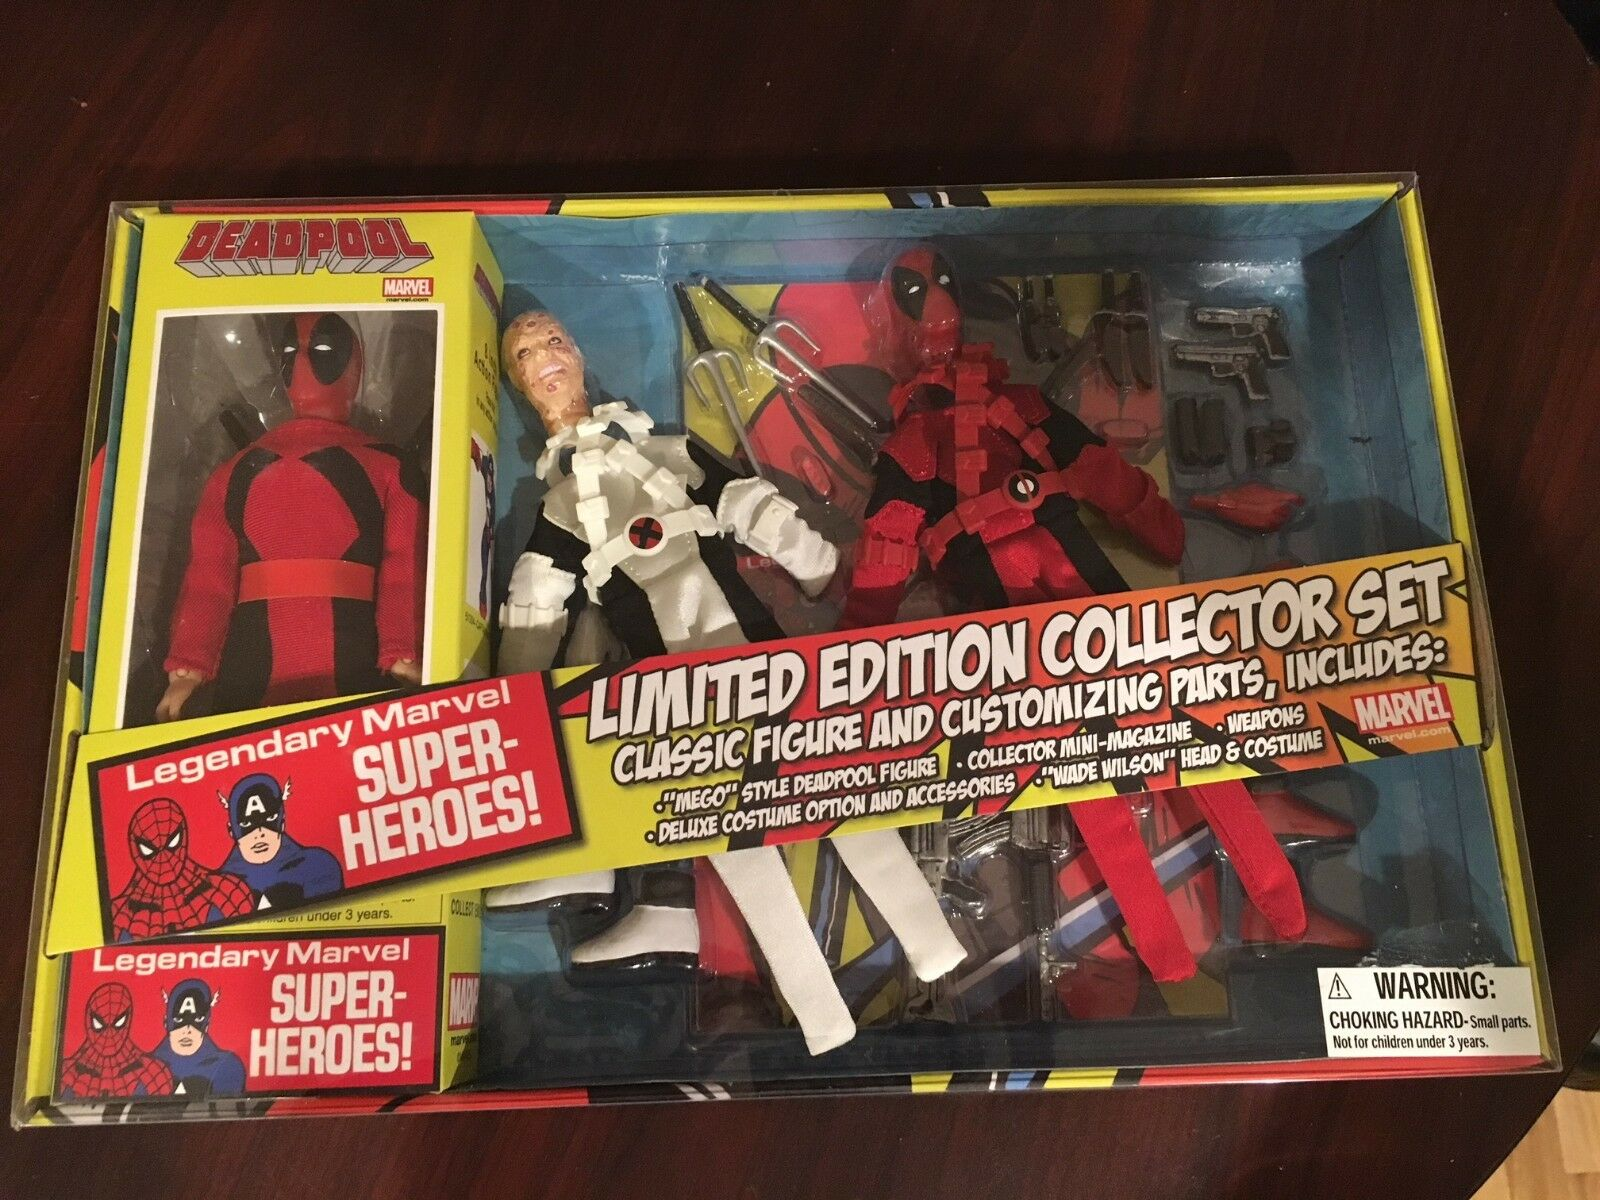 New Deadpool Limited Collectors Edition Set 8 8 8  Pose-able Marvel Action Figure cf0a39